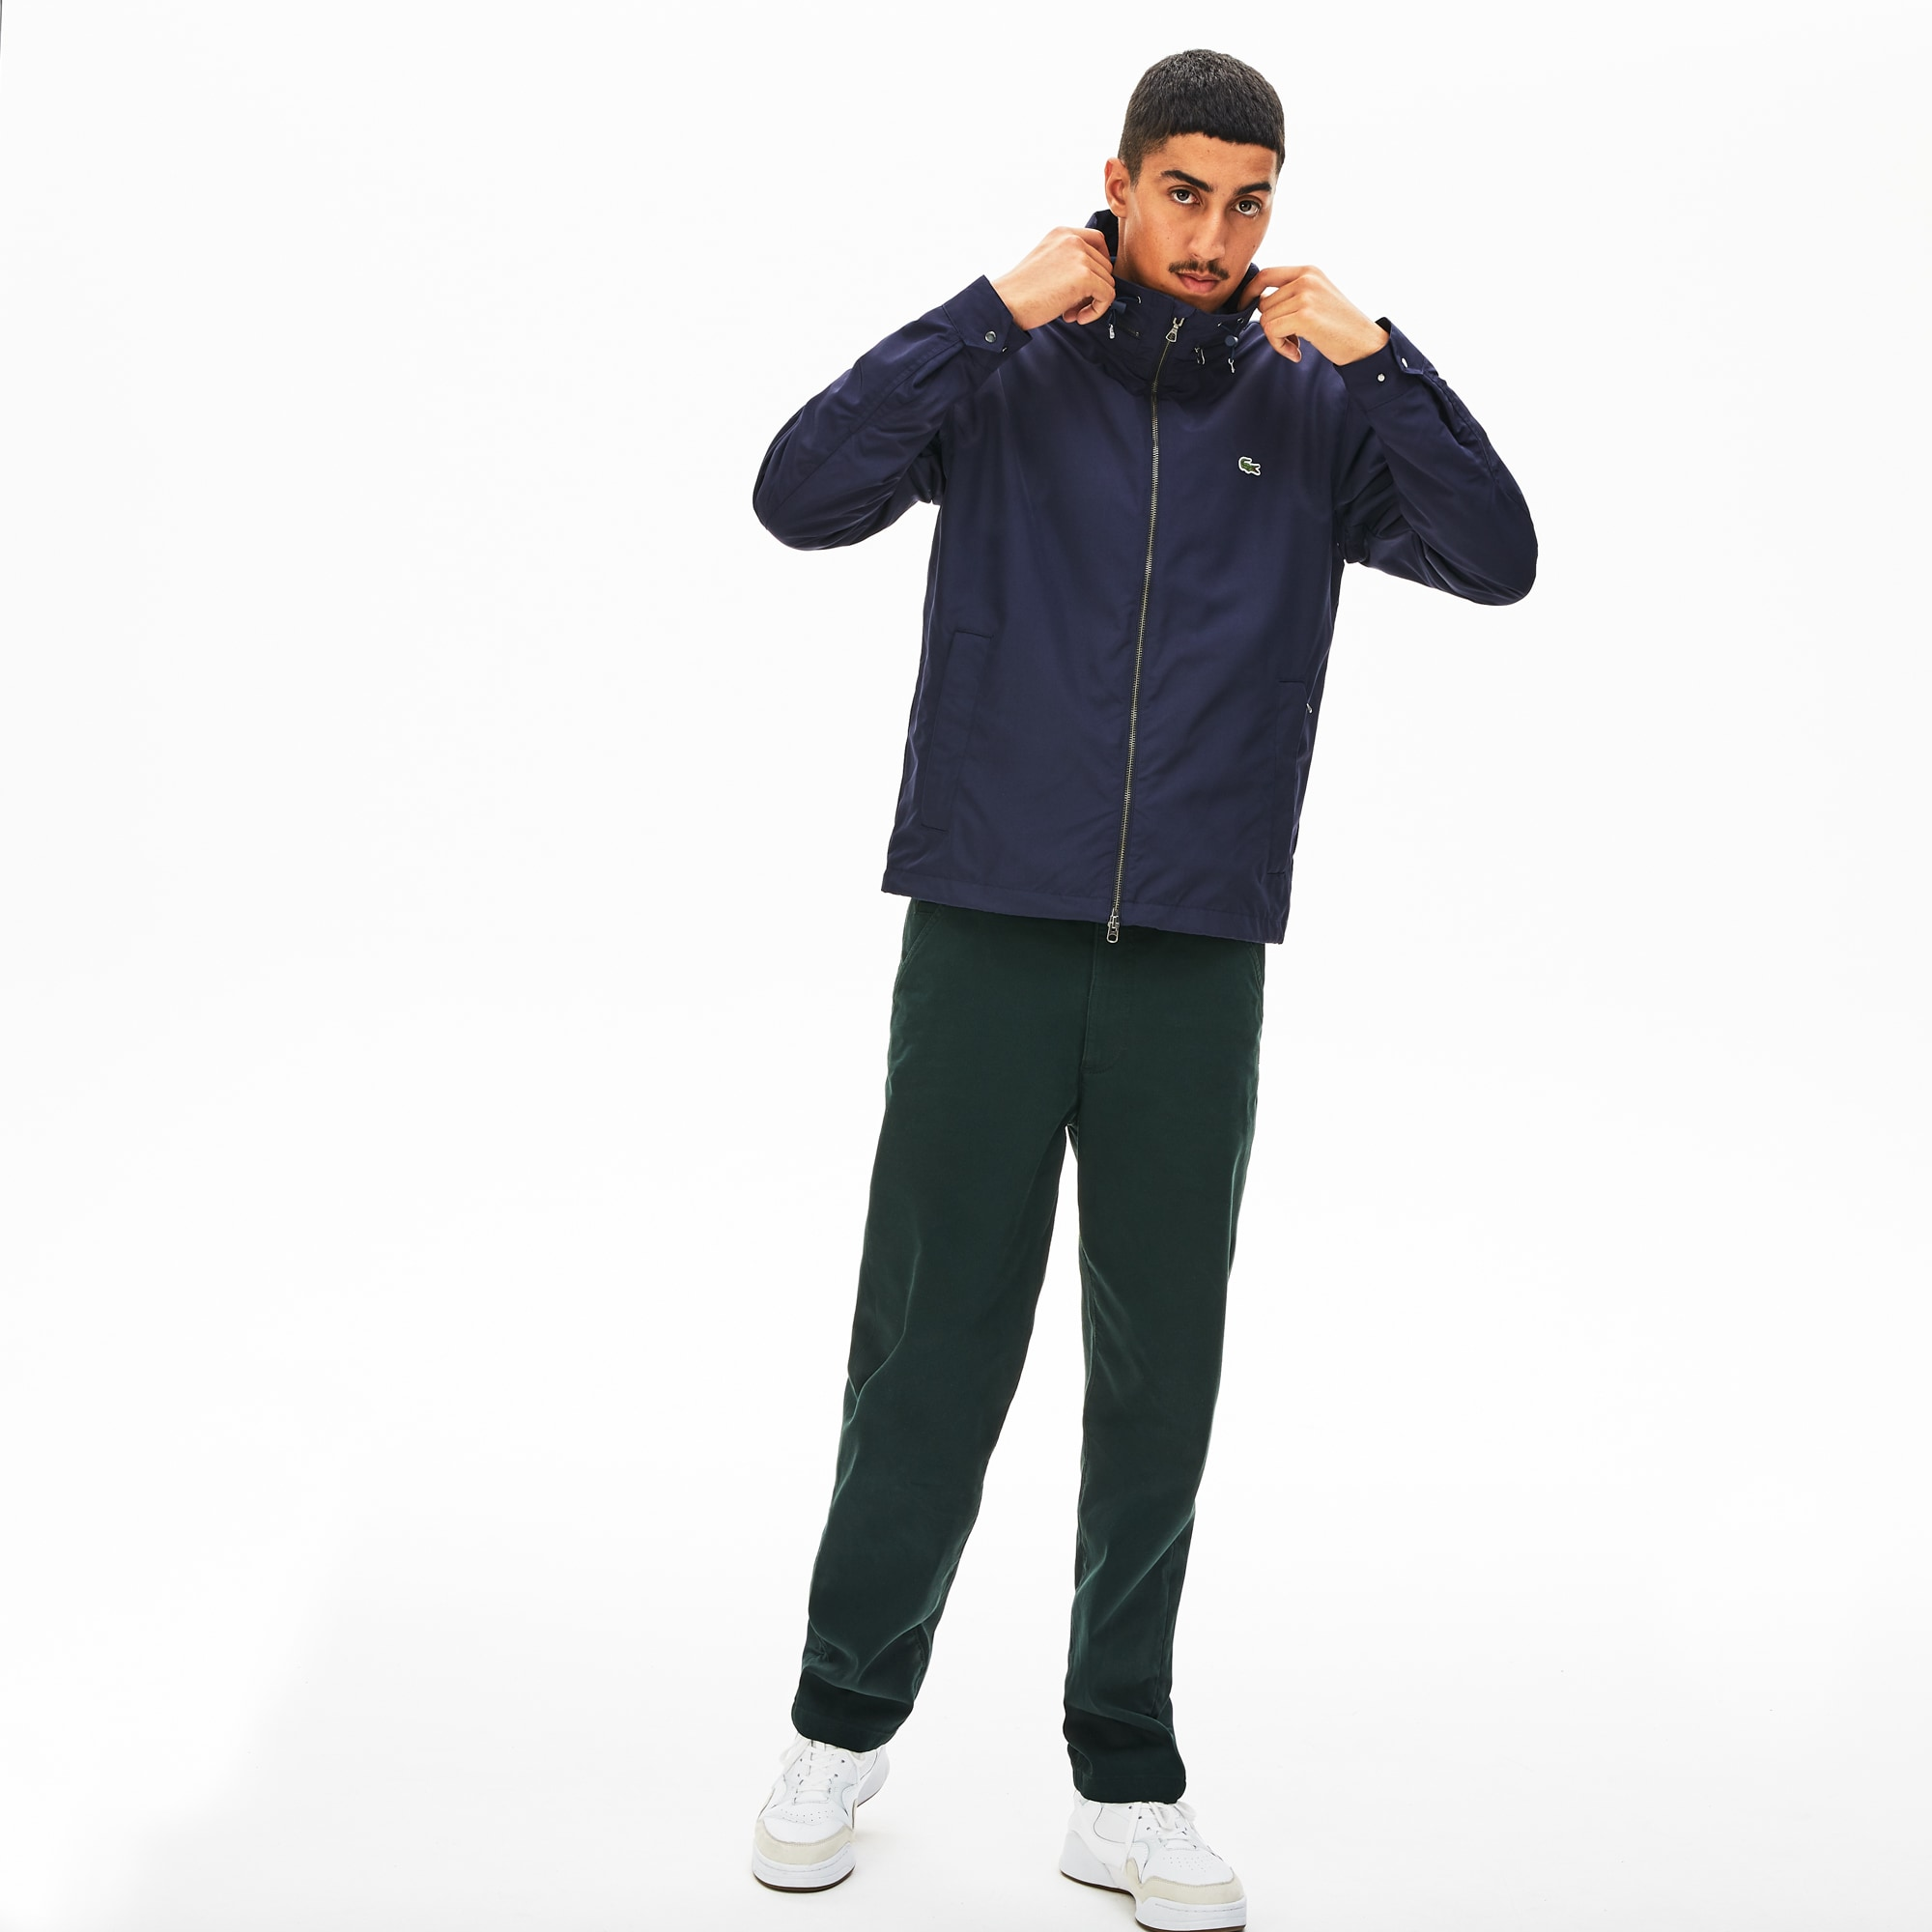 b2346b5af8a Men's Jackets and Coats | Lacoste Outerwear | LACOSTE